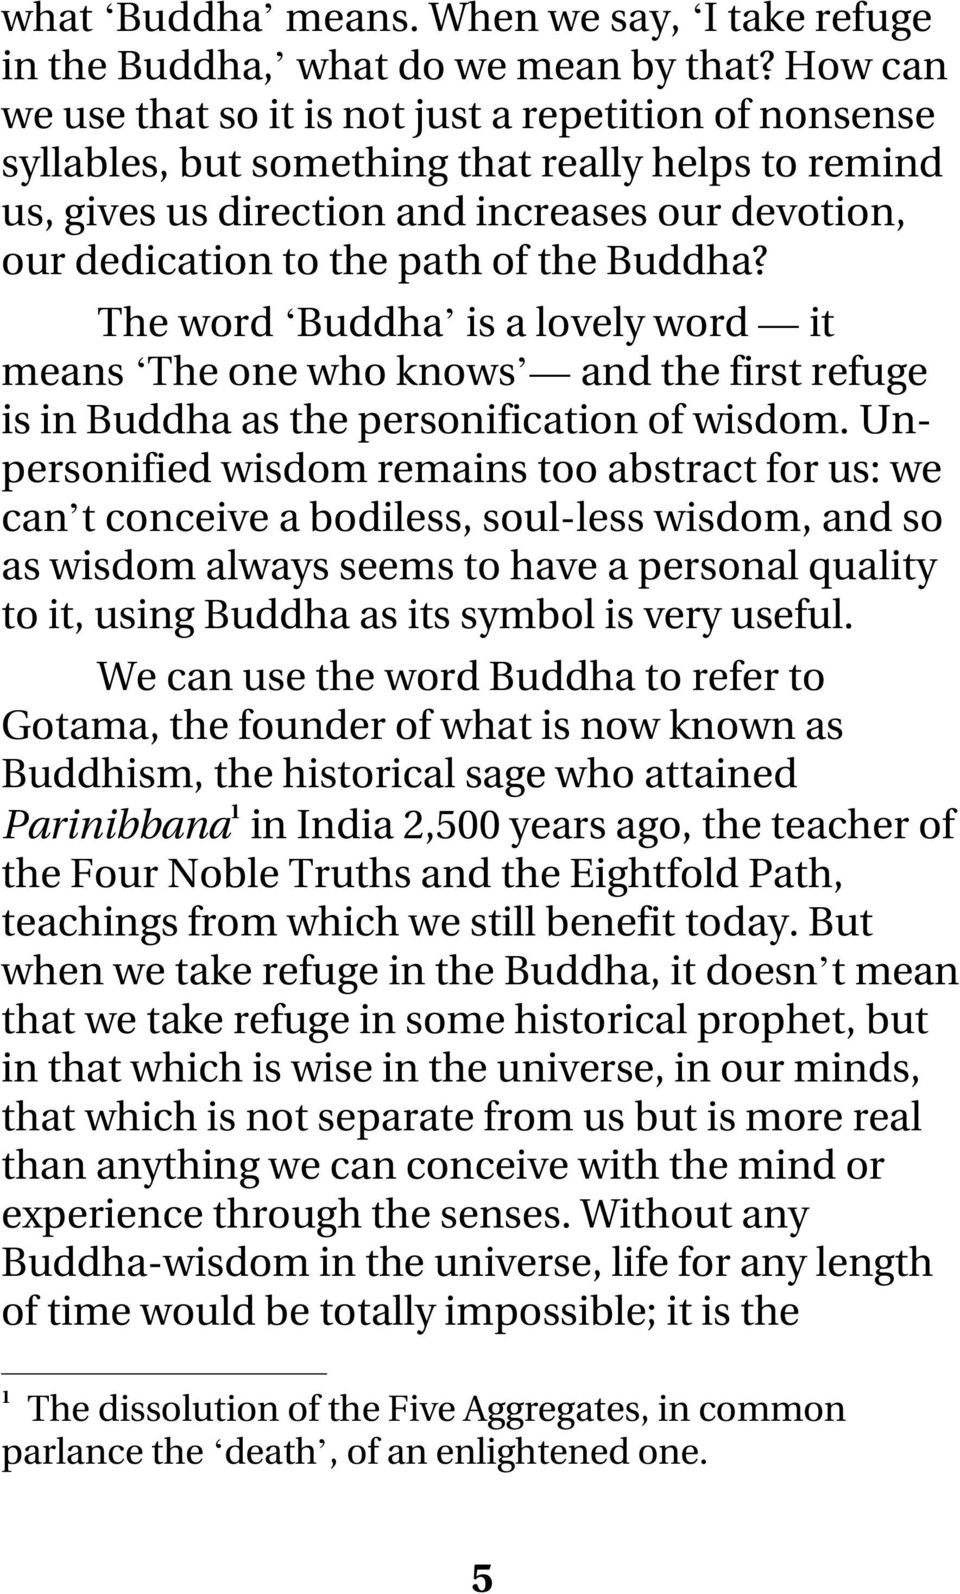 the Buddha? The word Buddha is a lovely word it means The one who knows and the first refuge is in Buddha as the personification of wisdom.